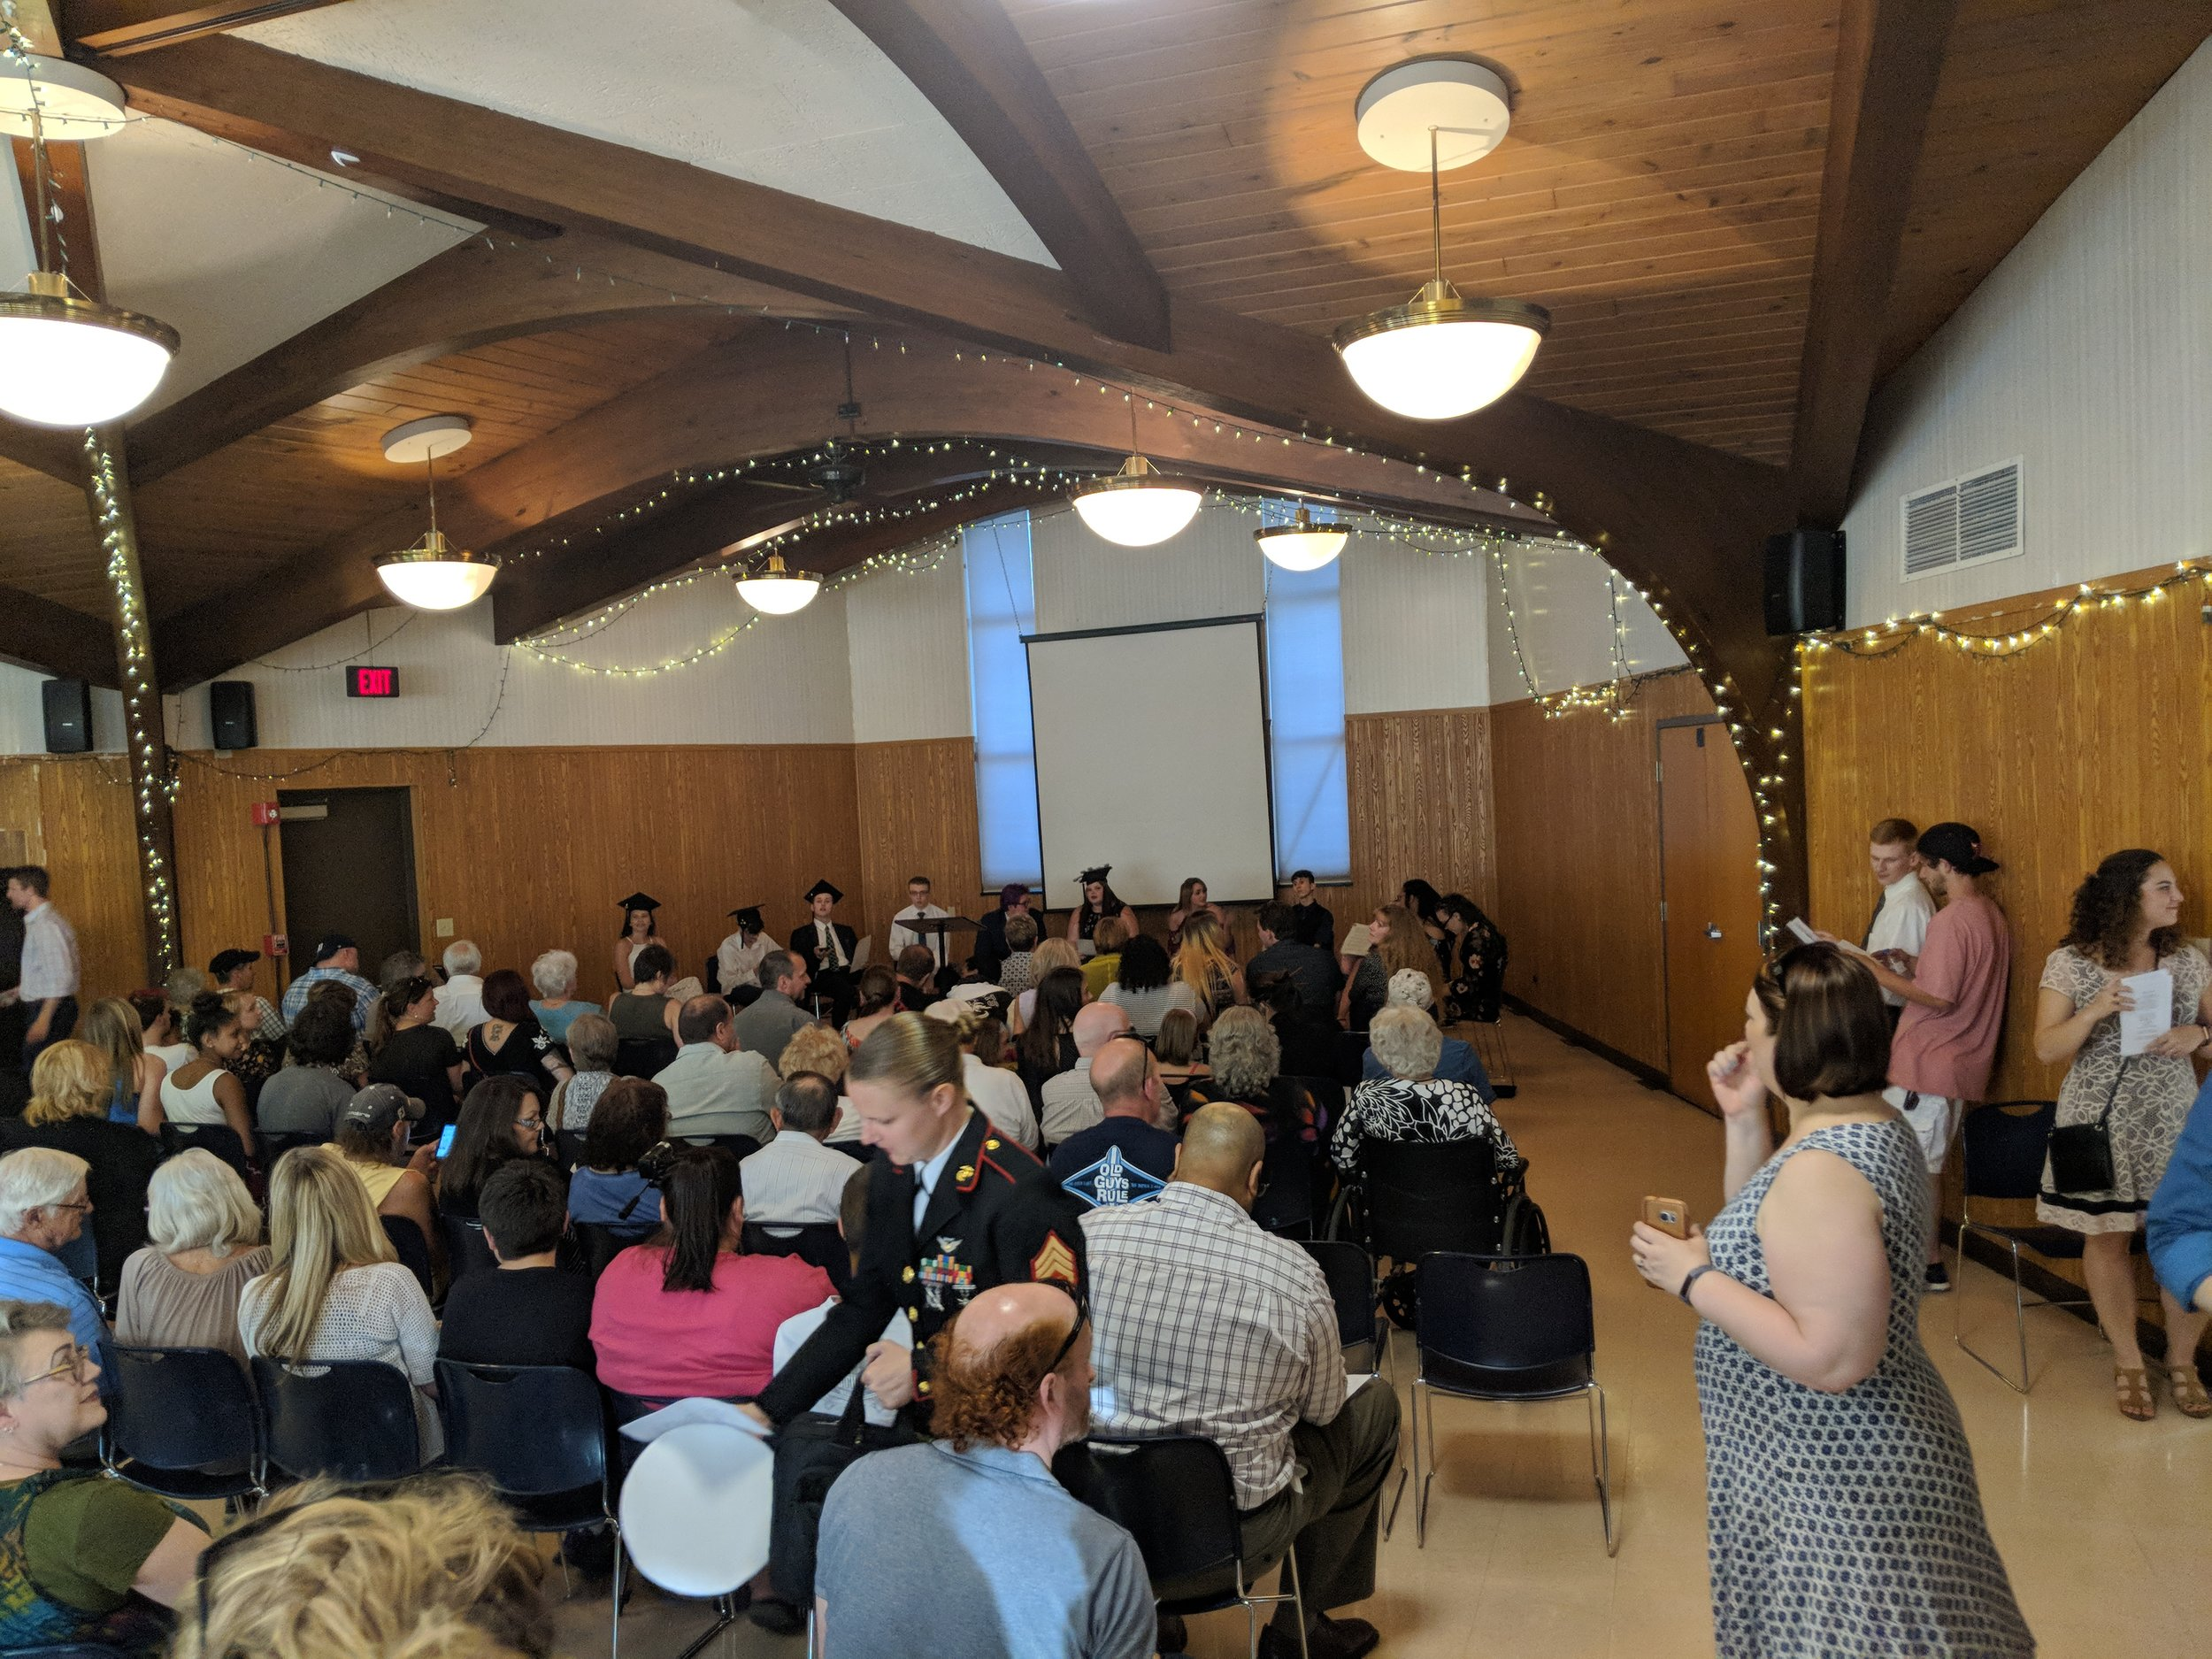 Full House at the Monona Community Center for the MG21 Graduation